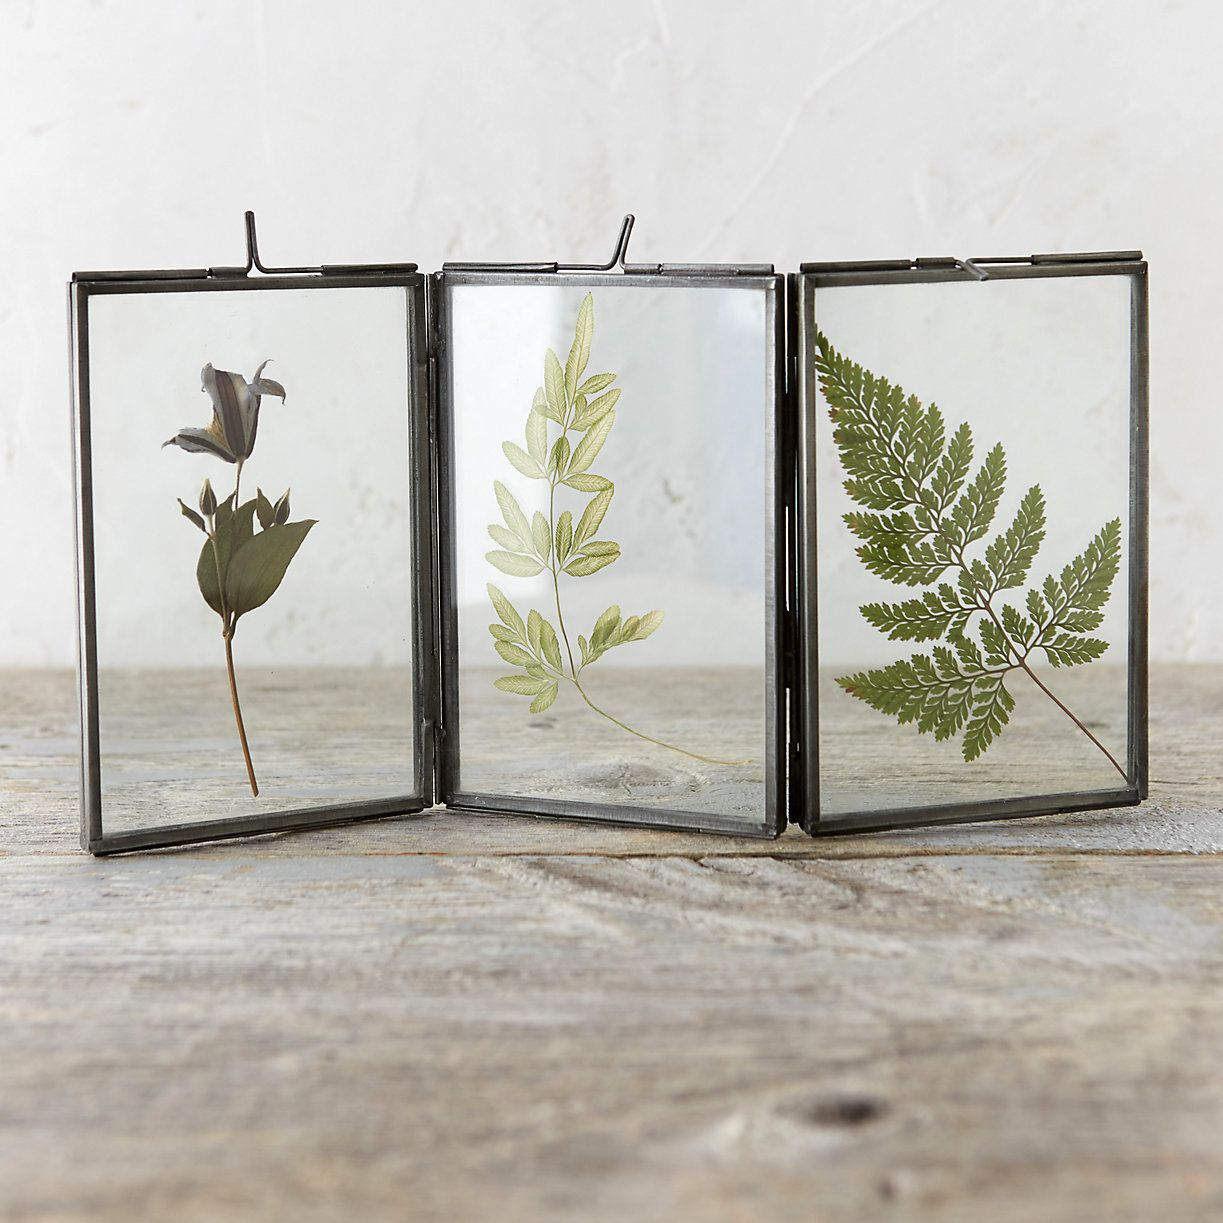 "With multiple panels for displaying preserved blooms, this hinged frame makes an understated addition to indoor décor.- Metal, glass- Wipe clean with glass cleaner- Individual frame: 5.5""H, 3.5""W- Imported2-fold: 6""H, 8""W3-fold: 6""H, 12""W"